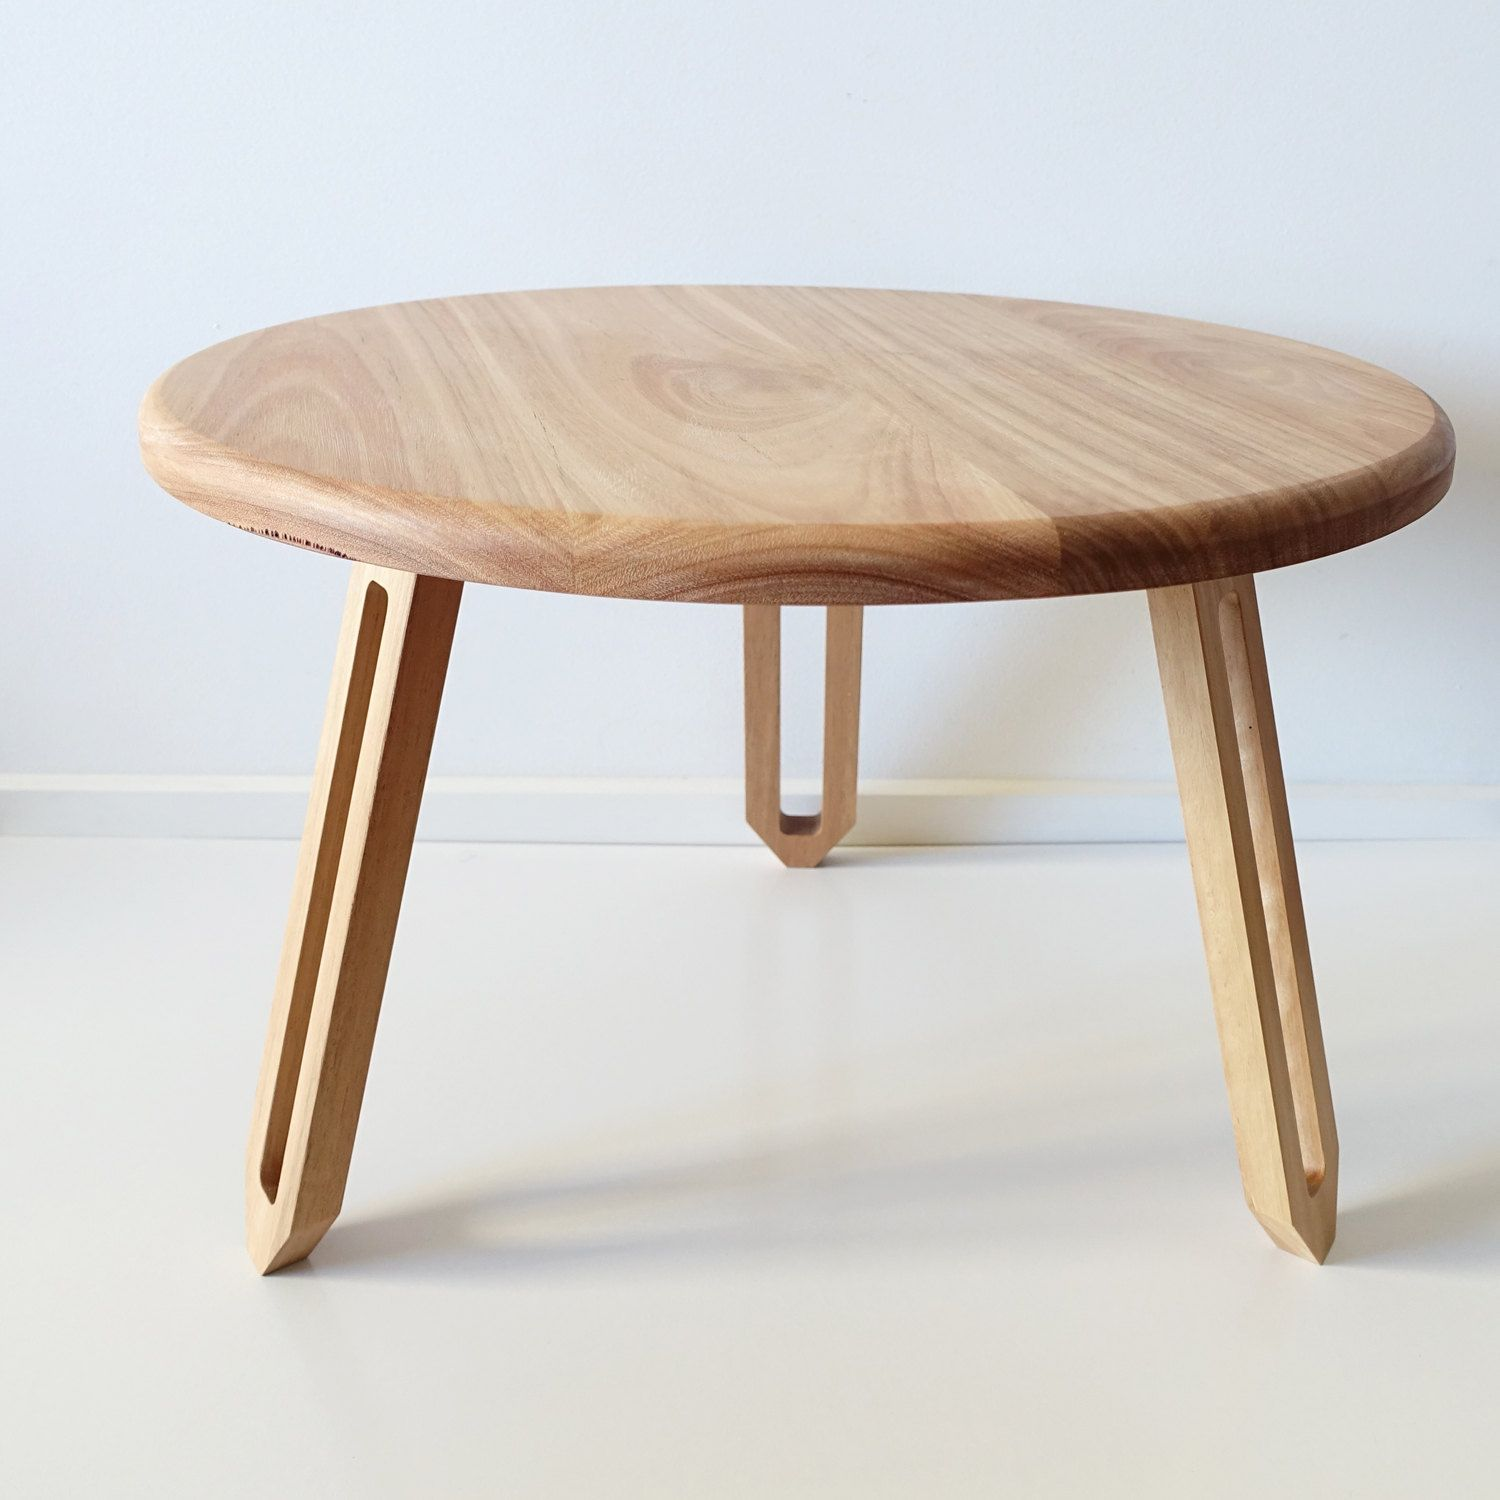 Low Round Wood Coffe Table With Folding Legs For Small And Narrow Living Spaces [ 1500 x 1500 Pixel ]